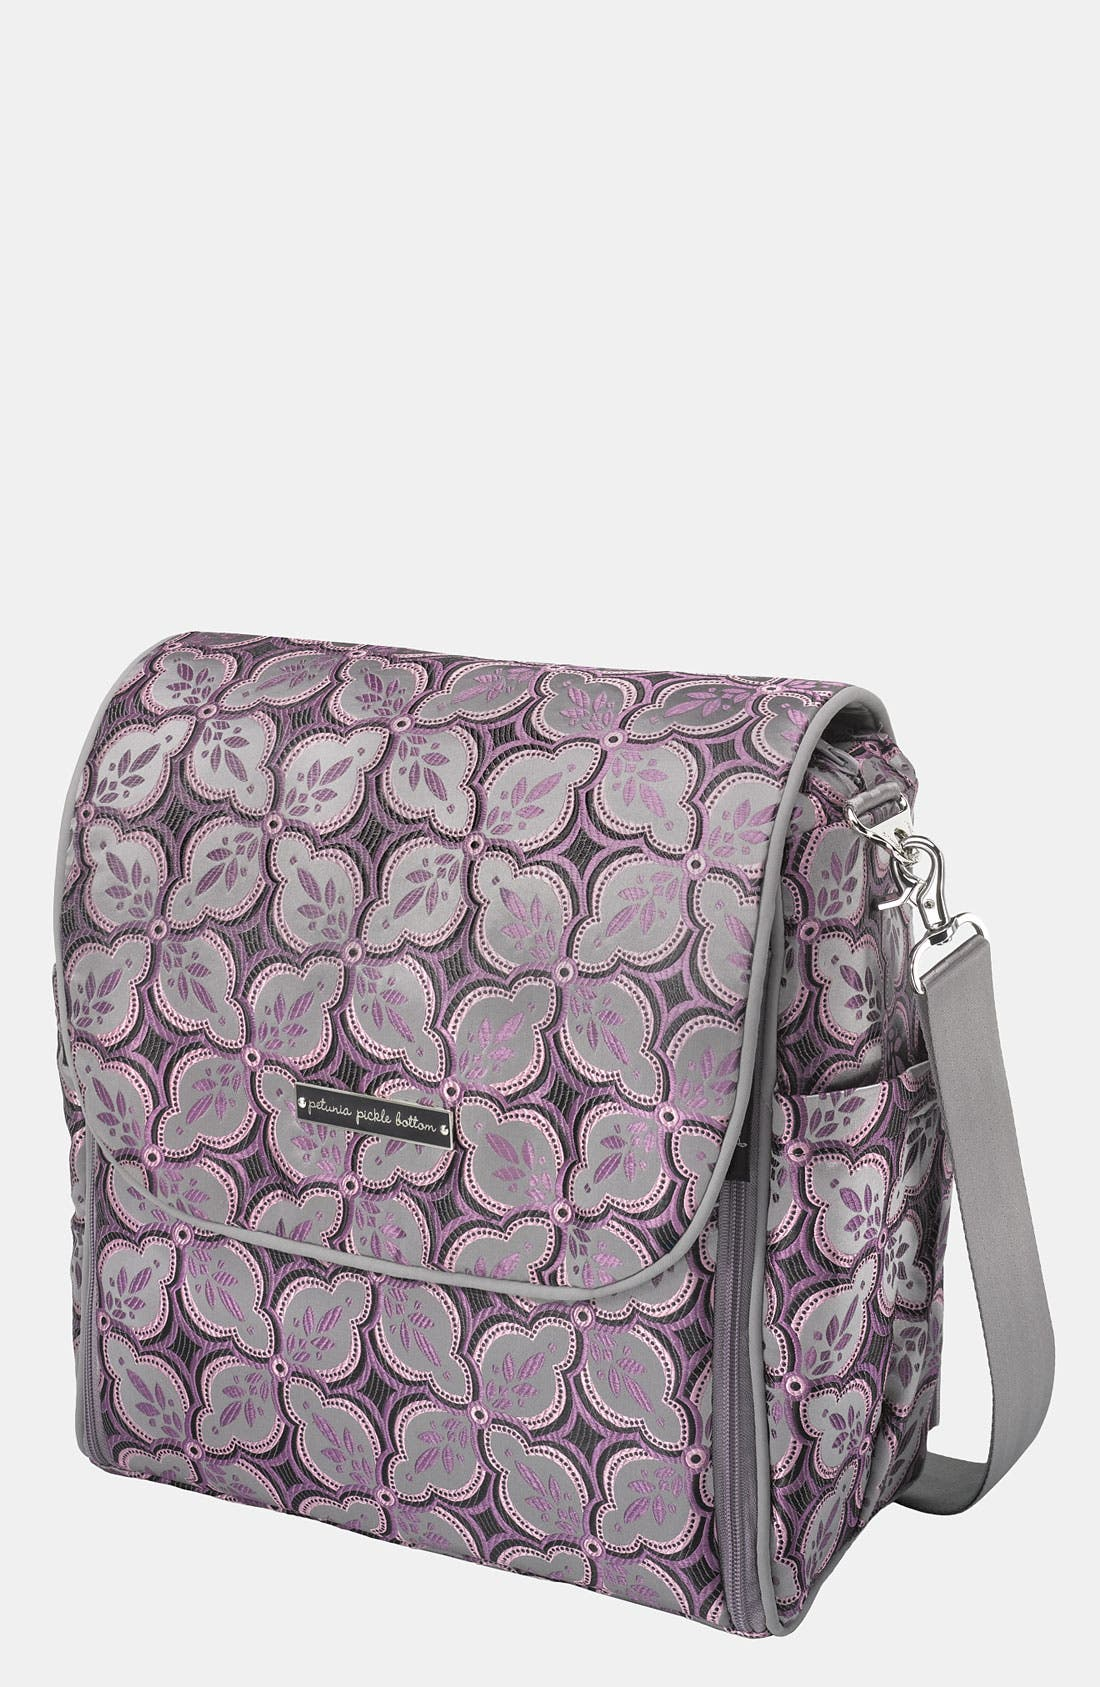 Alternate Image 1 Selected - Petunia Pickle Bottom 'Boxy' Backpack Diaper Bag